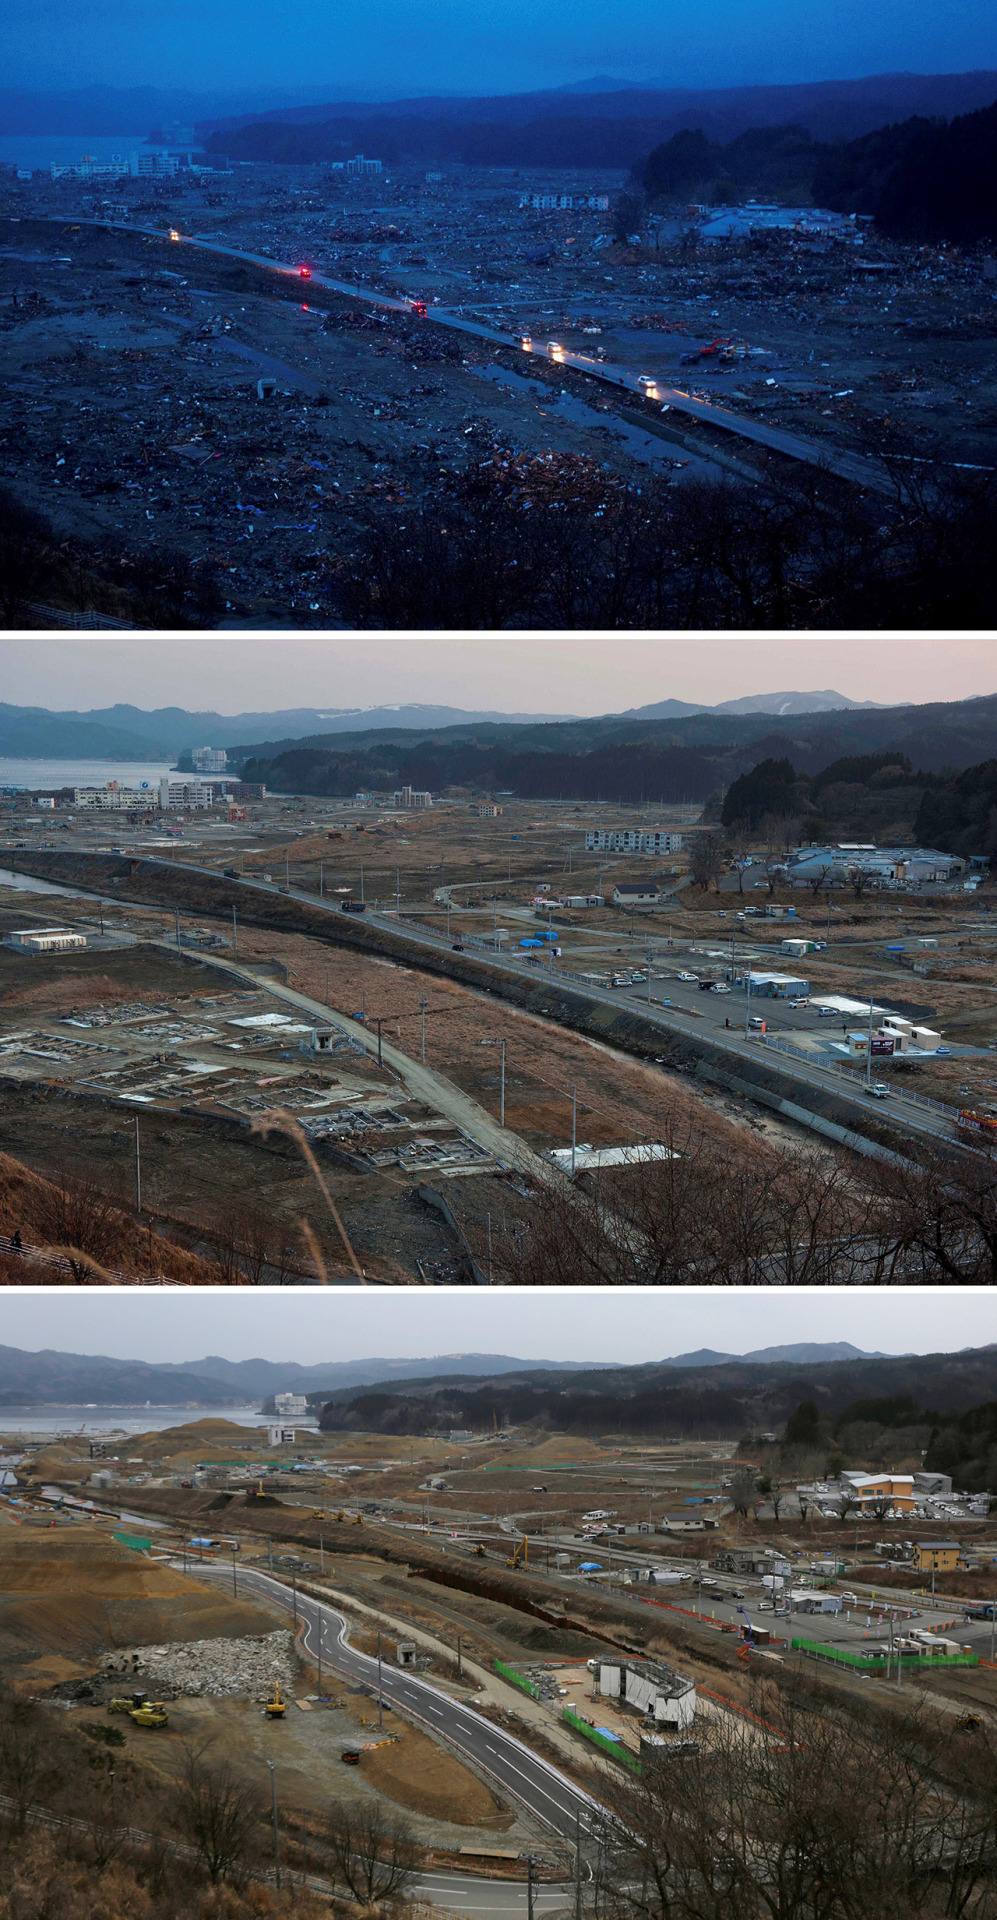 In this combination photo, Japanese vehicles pass through the ruins of the leveled city of Minamisanriku, Japan, on March 15, 2011, top, four days after the tsunami, vehicles pass through the same area on Feb. 23, 2012, center, and vehicles go through the same area under construction on Monday, March 7, 2016. Five years after the disaster, construction work is clearly underway but far from done. Rebuilt roads stretch to the horizon between still largely vacant expanses. It is a massive undertaking to raise the ground level of entire neighborhoods, to better protect them from inundation, before rebuilding from scratch. (AP Photo/David Guttenfelder and Eugene Hoshiko)